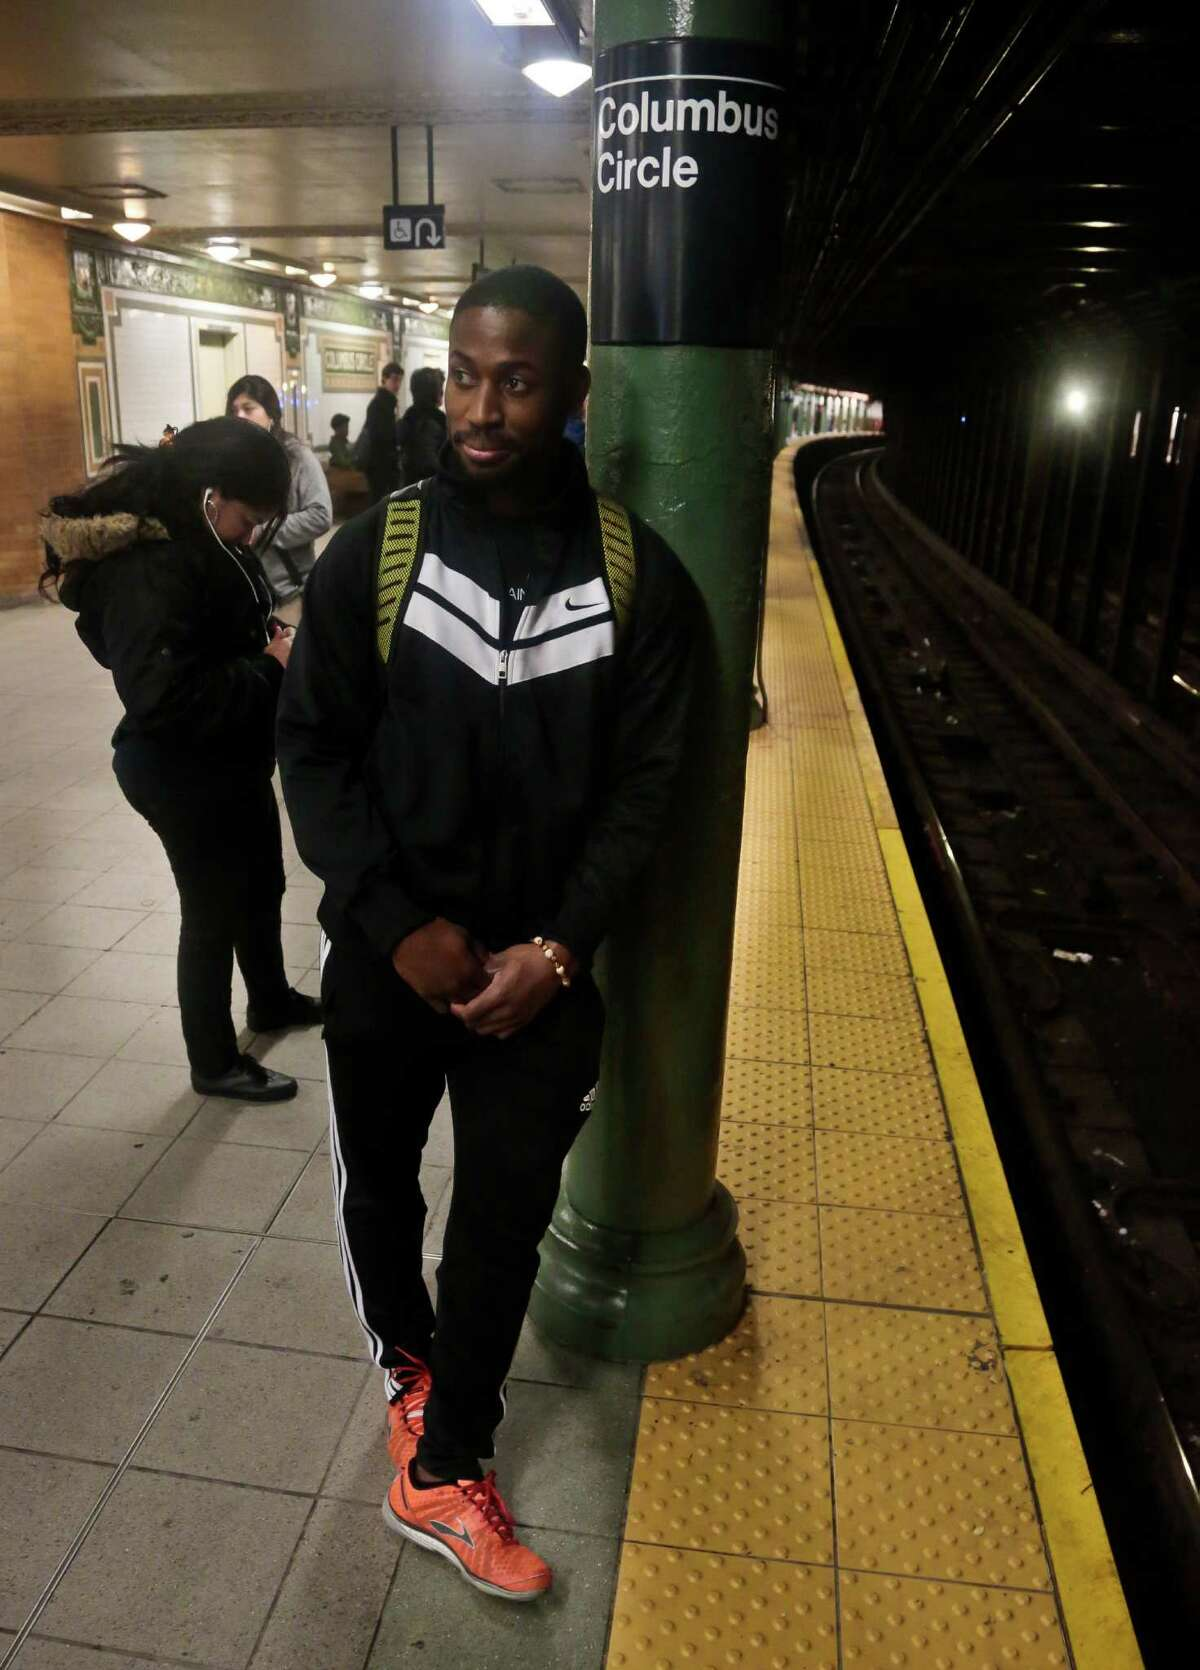 Dennis Codrington, who rescued a man after he onto the subway tracks, stands near the site of the incident on the Columbus Circle subway platform on Thursday, Dec. 5, 2013 in New York. Codrington doesn?'t know what happened to the man he saved, but he hopes he survived and is healthy. (AP Photo/Bebeto Matthews) ORG XMIT: NYBM302